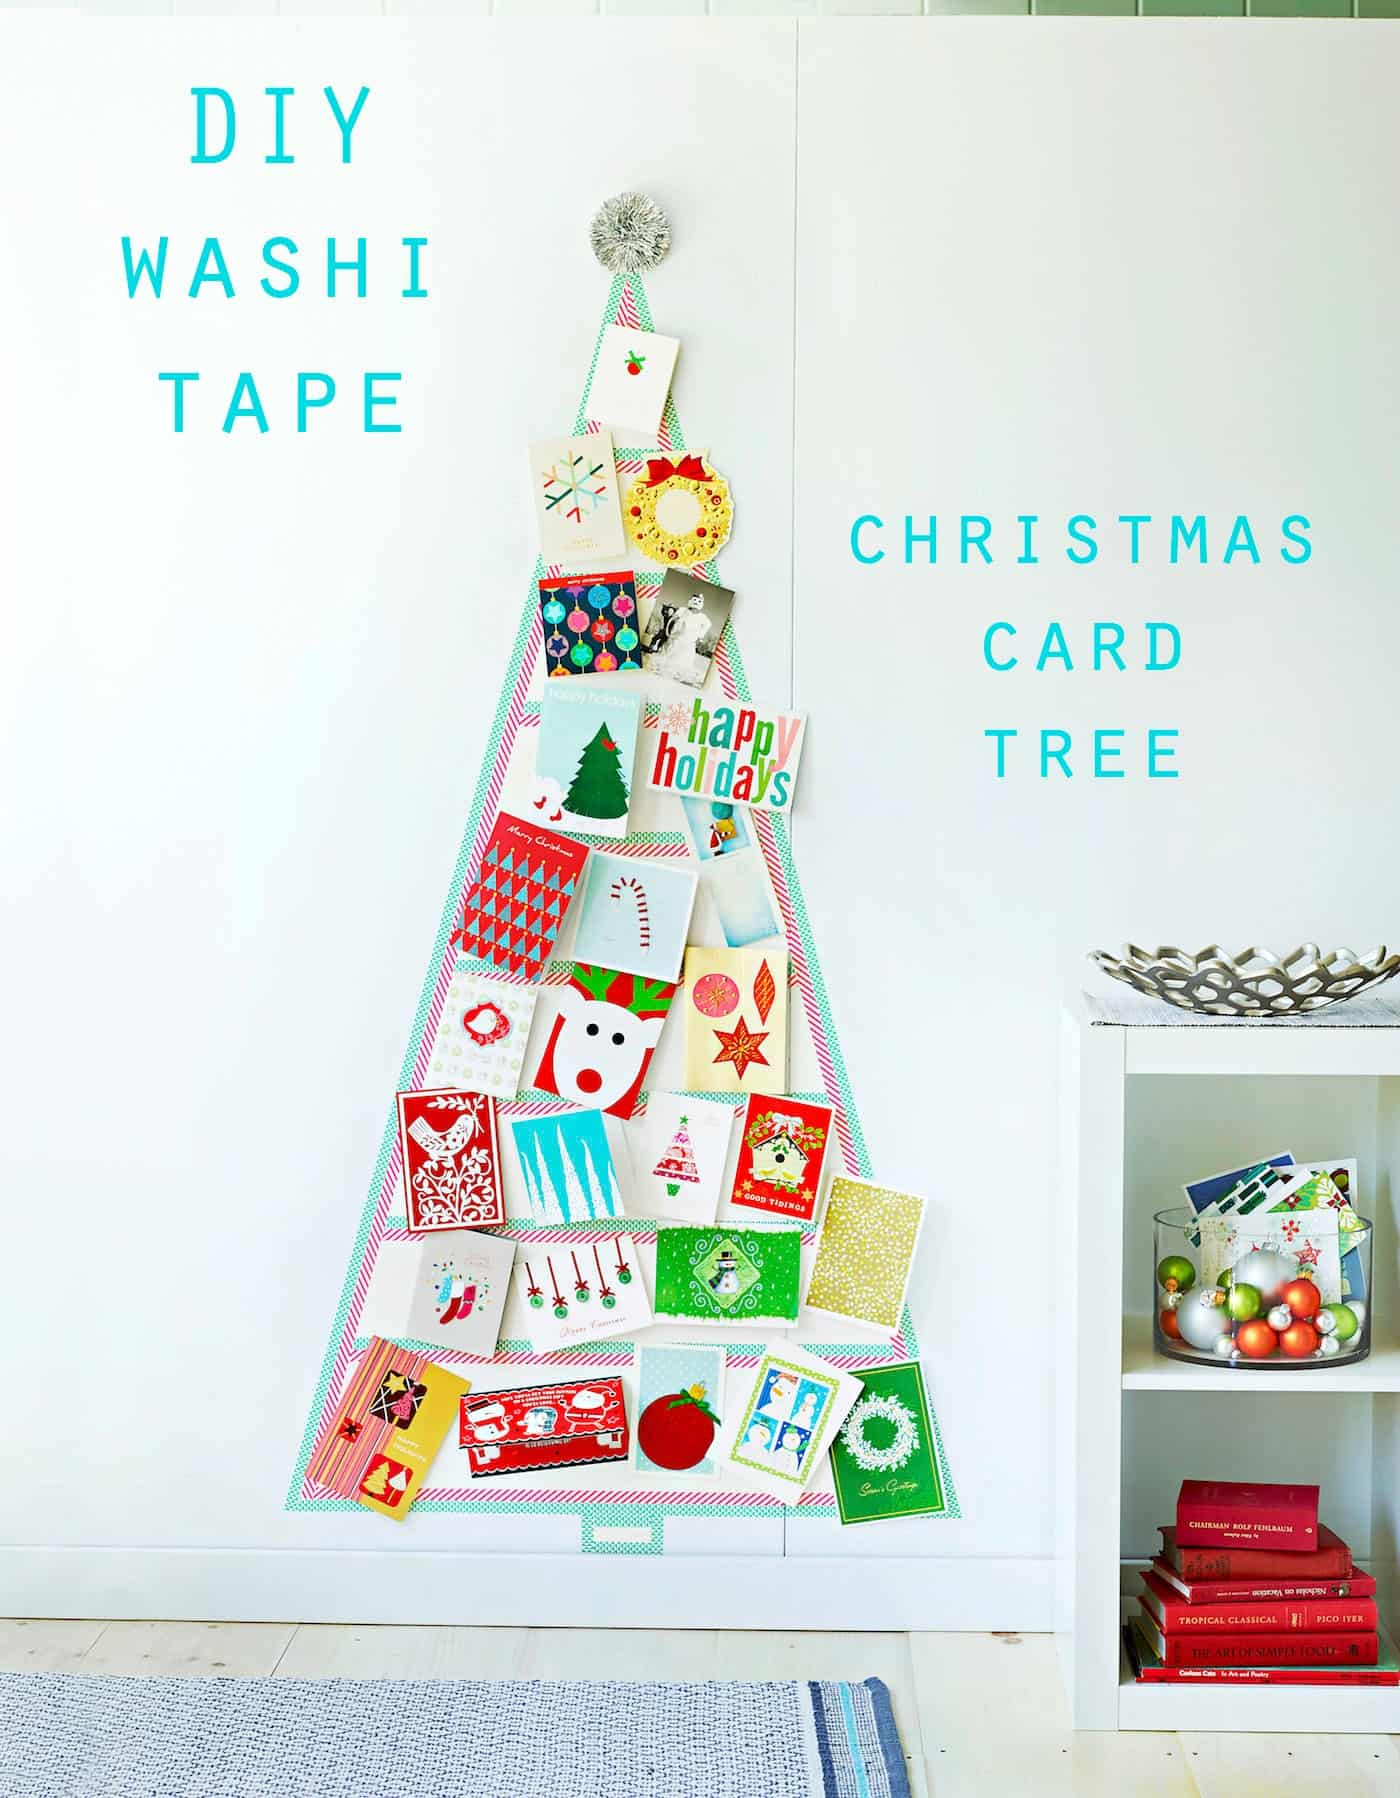 DIY Washi Tape Christmas Card Tree - diycandy.com